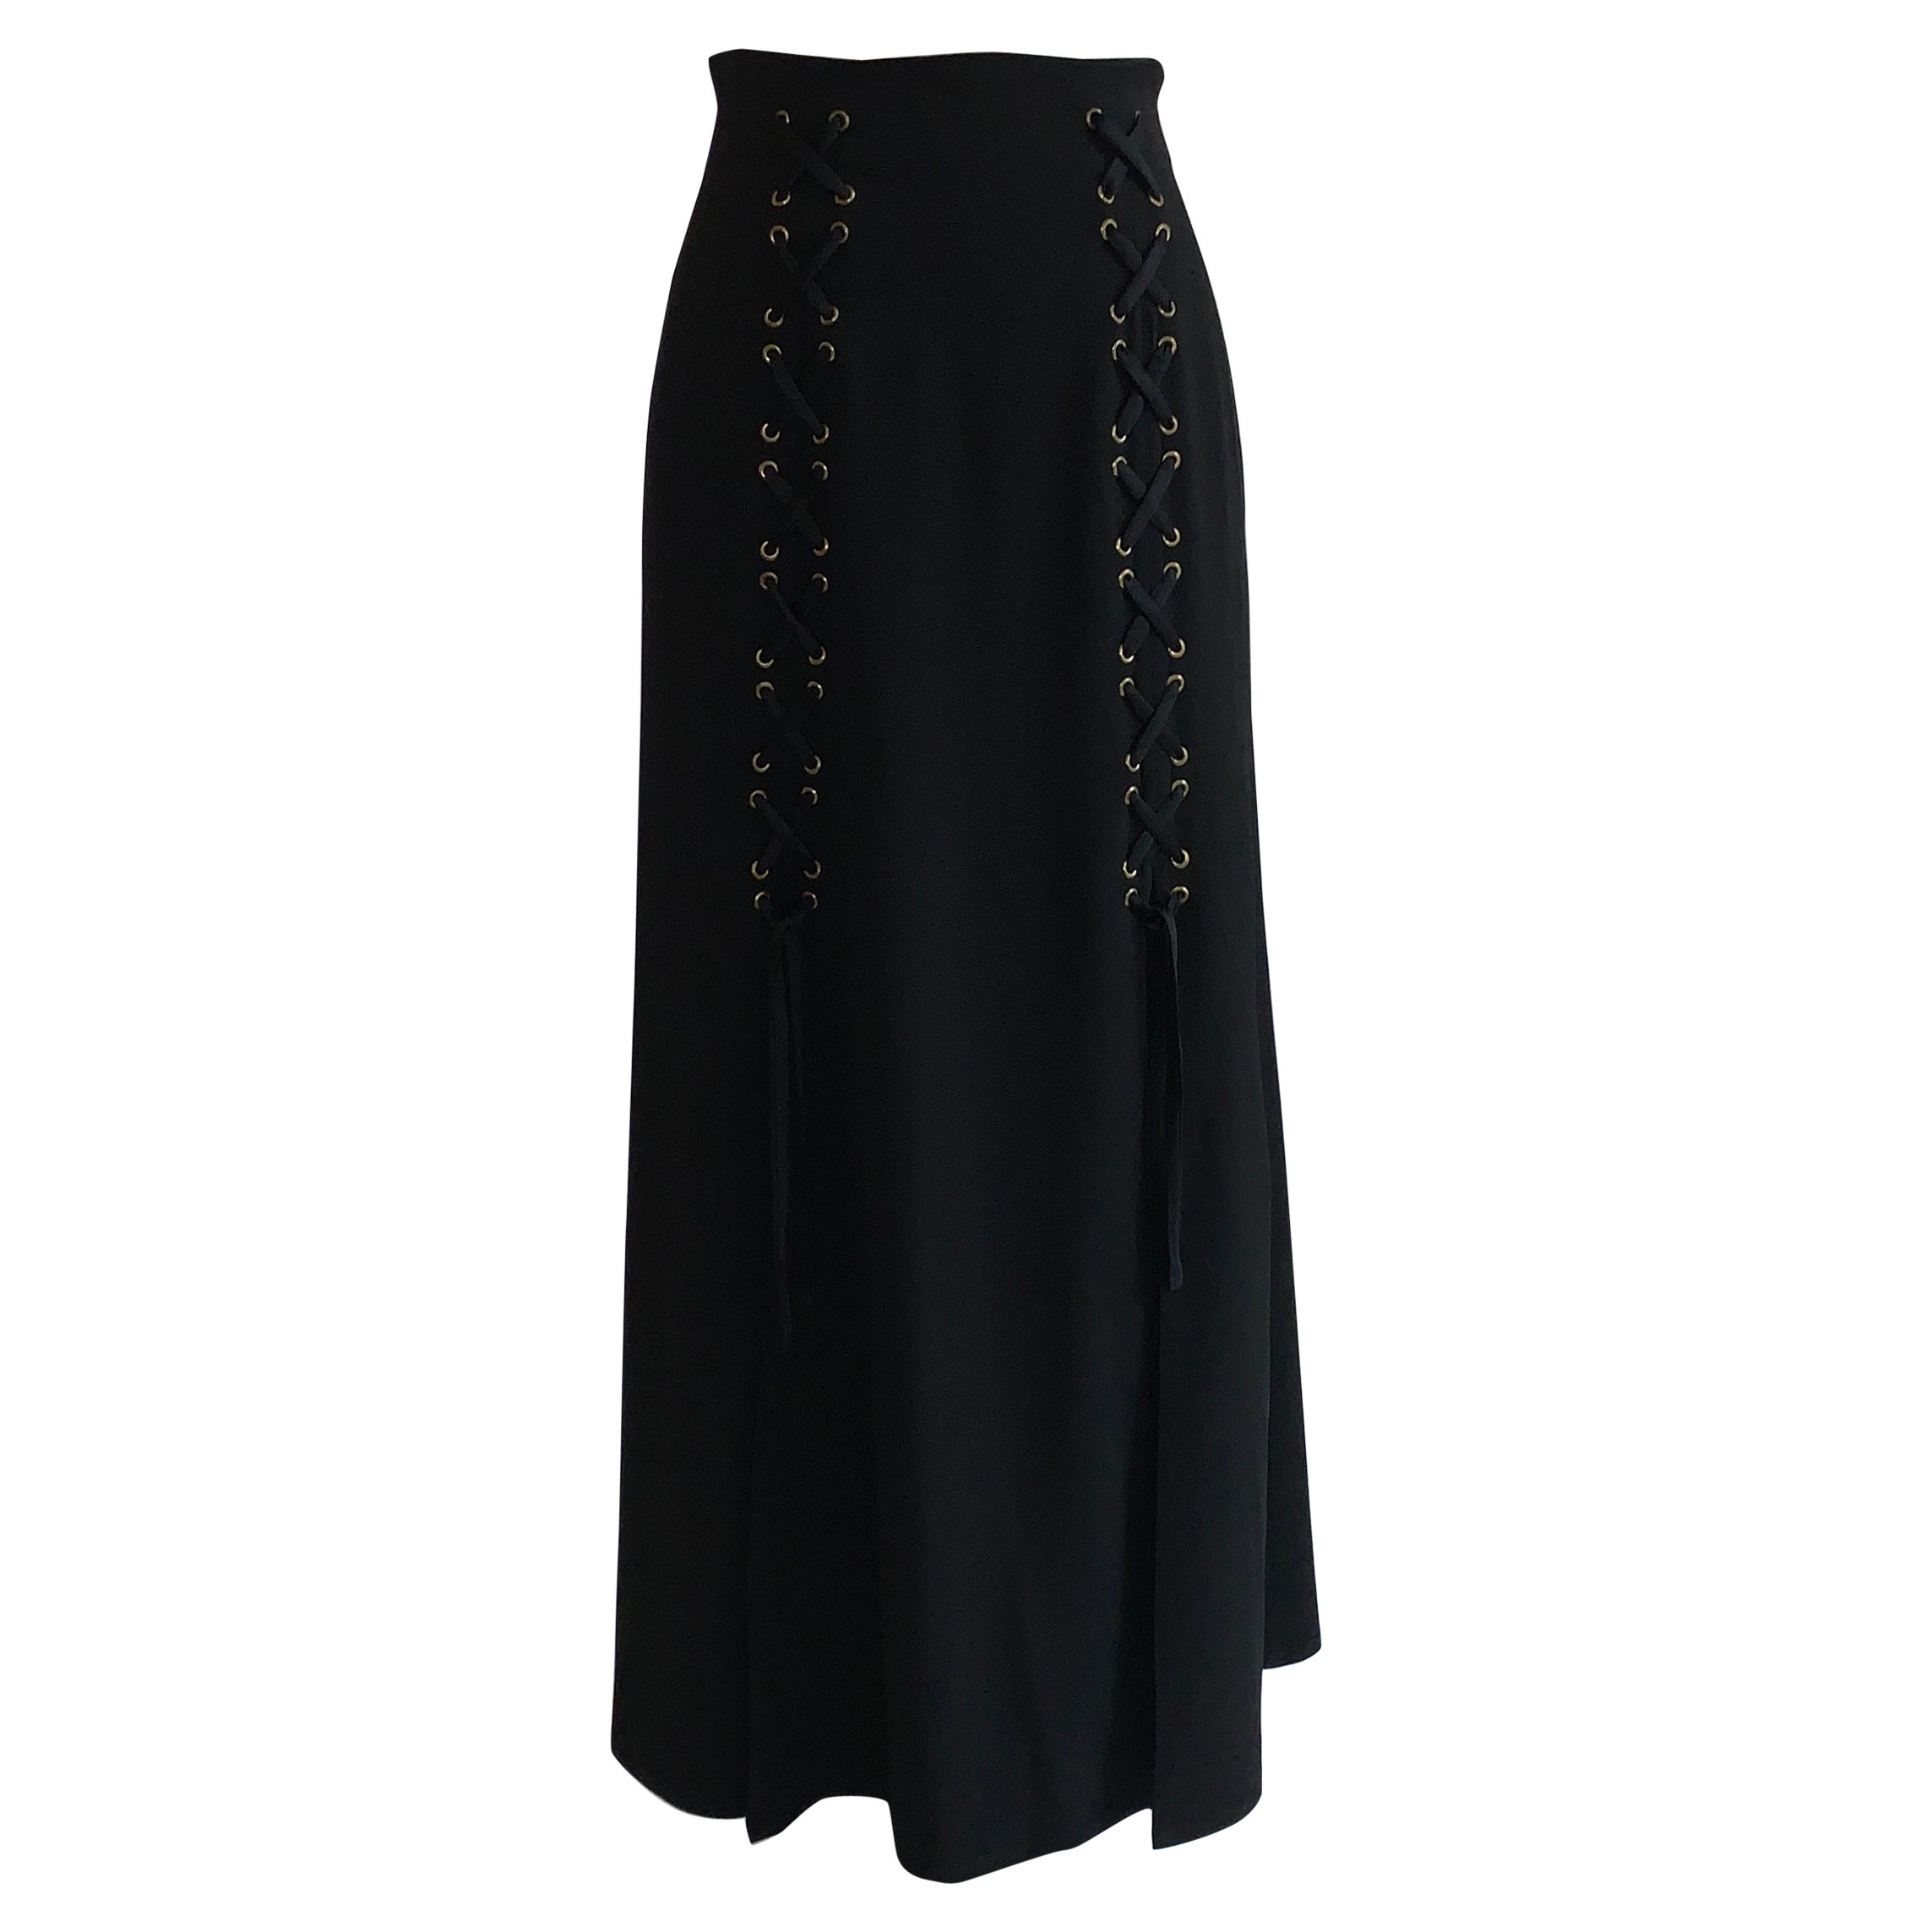 Vintage Moschino Cheap & Chic Black Lace Up Detail Maxi Skirt 1990s